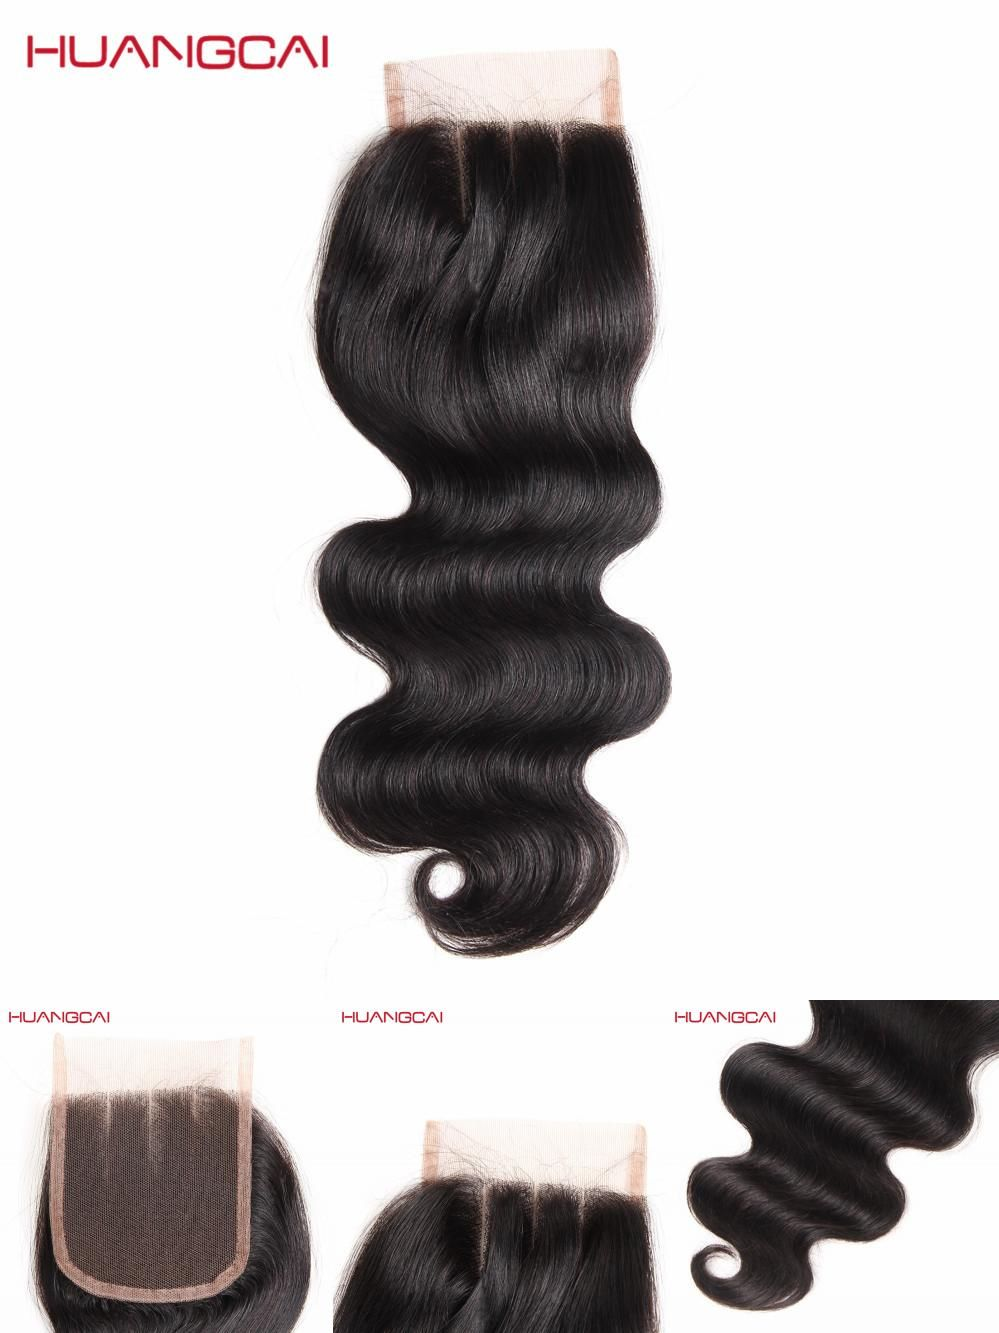 "[Visit to Buy] Huangcai Hair 8""-18"" Body Wave 3 Way Part Lace Closure 4x4 Swiss Lace Non Remy Natural Color 130% Density No Shed Tangle Smell #Advertisement"